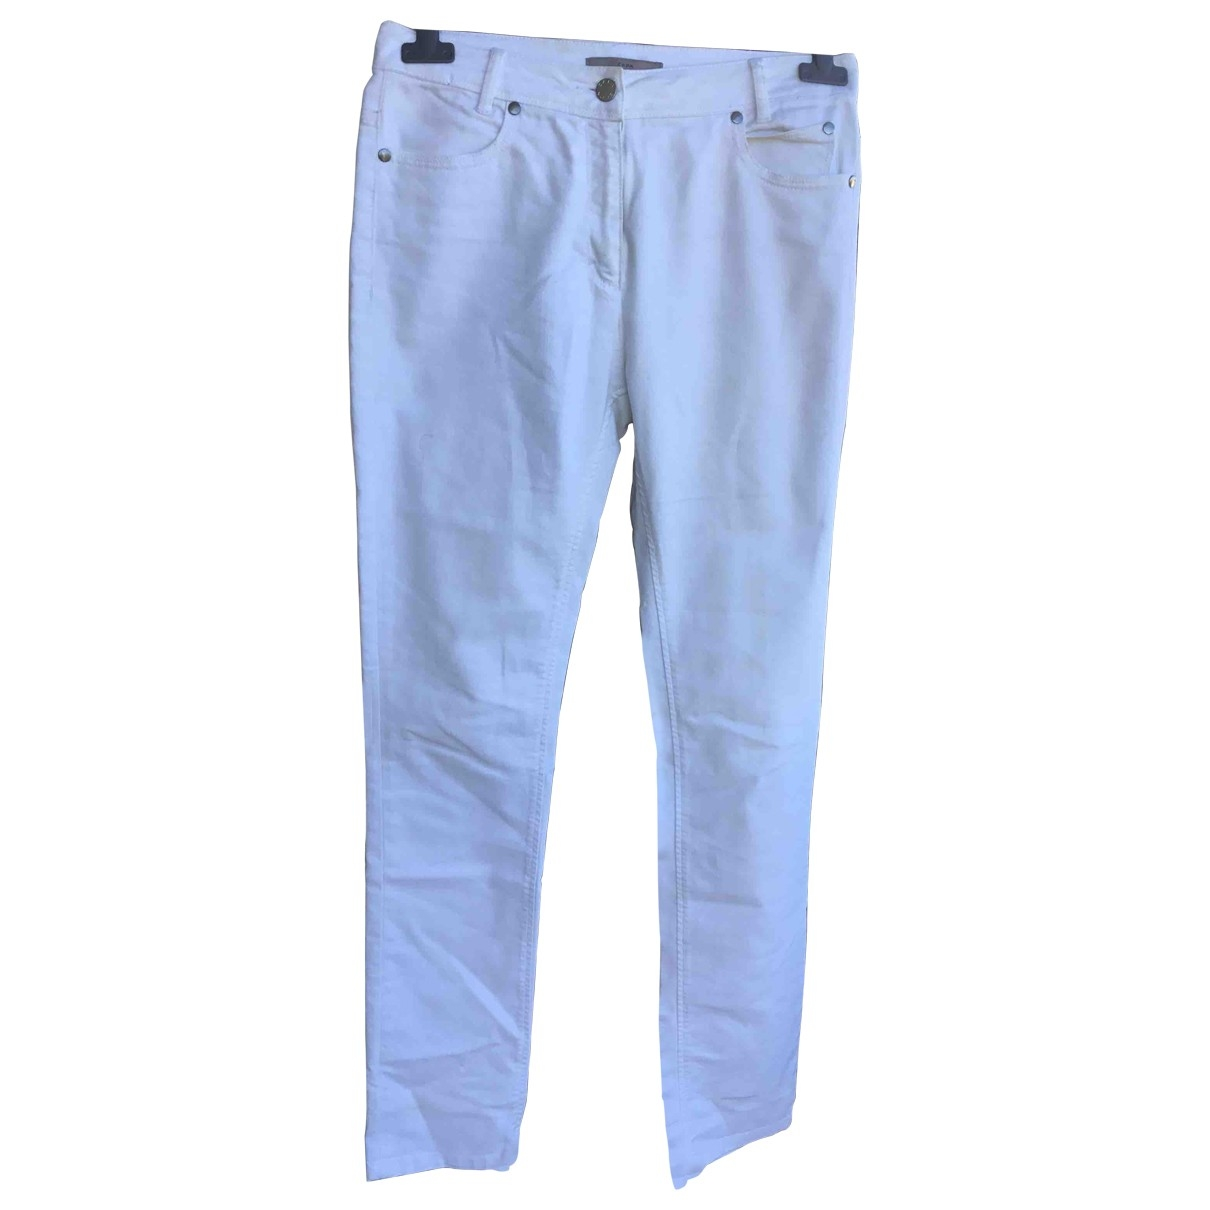 Zapa \N White Cotton - elasthane Jeans for Women 38 FR